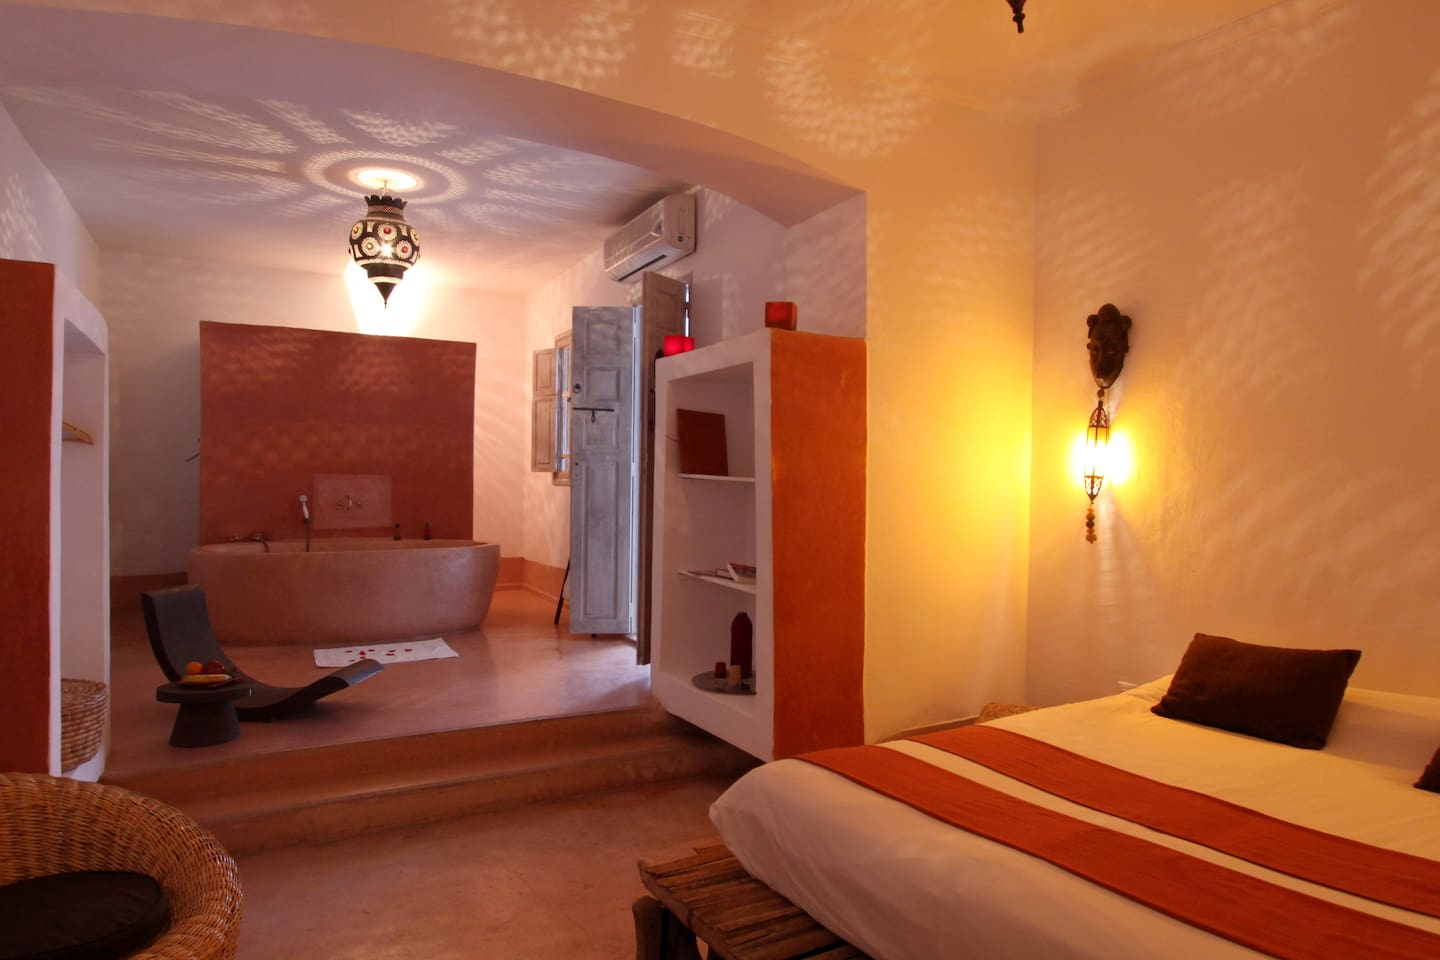 Oeuf room, spacious room with character